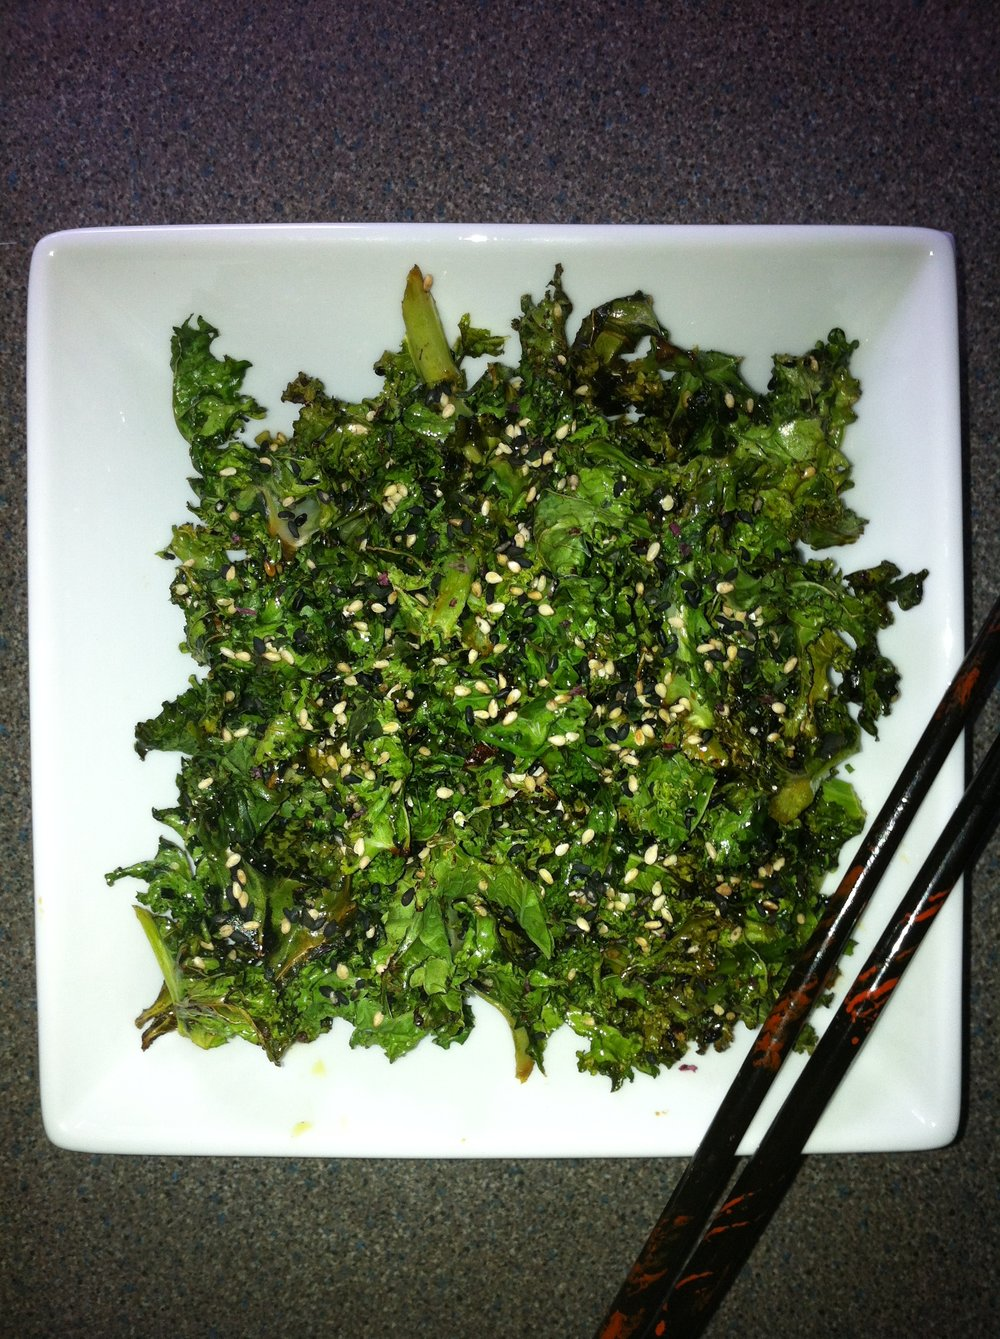 Crispy Kale with sesame seeds